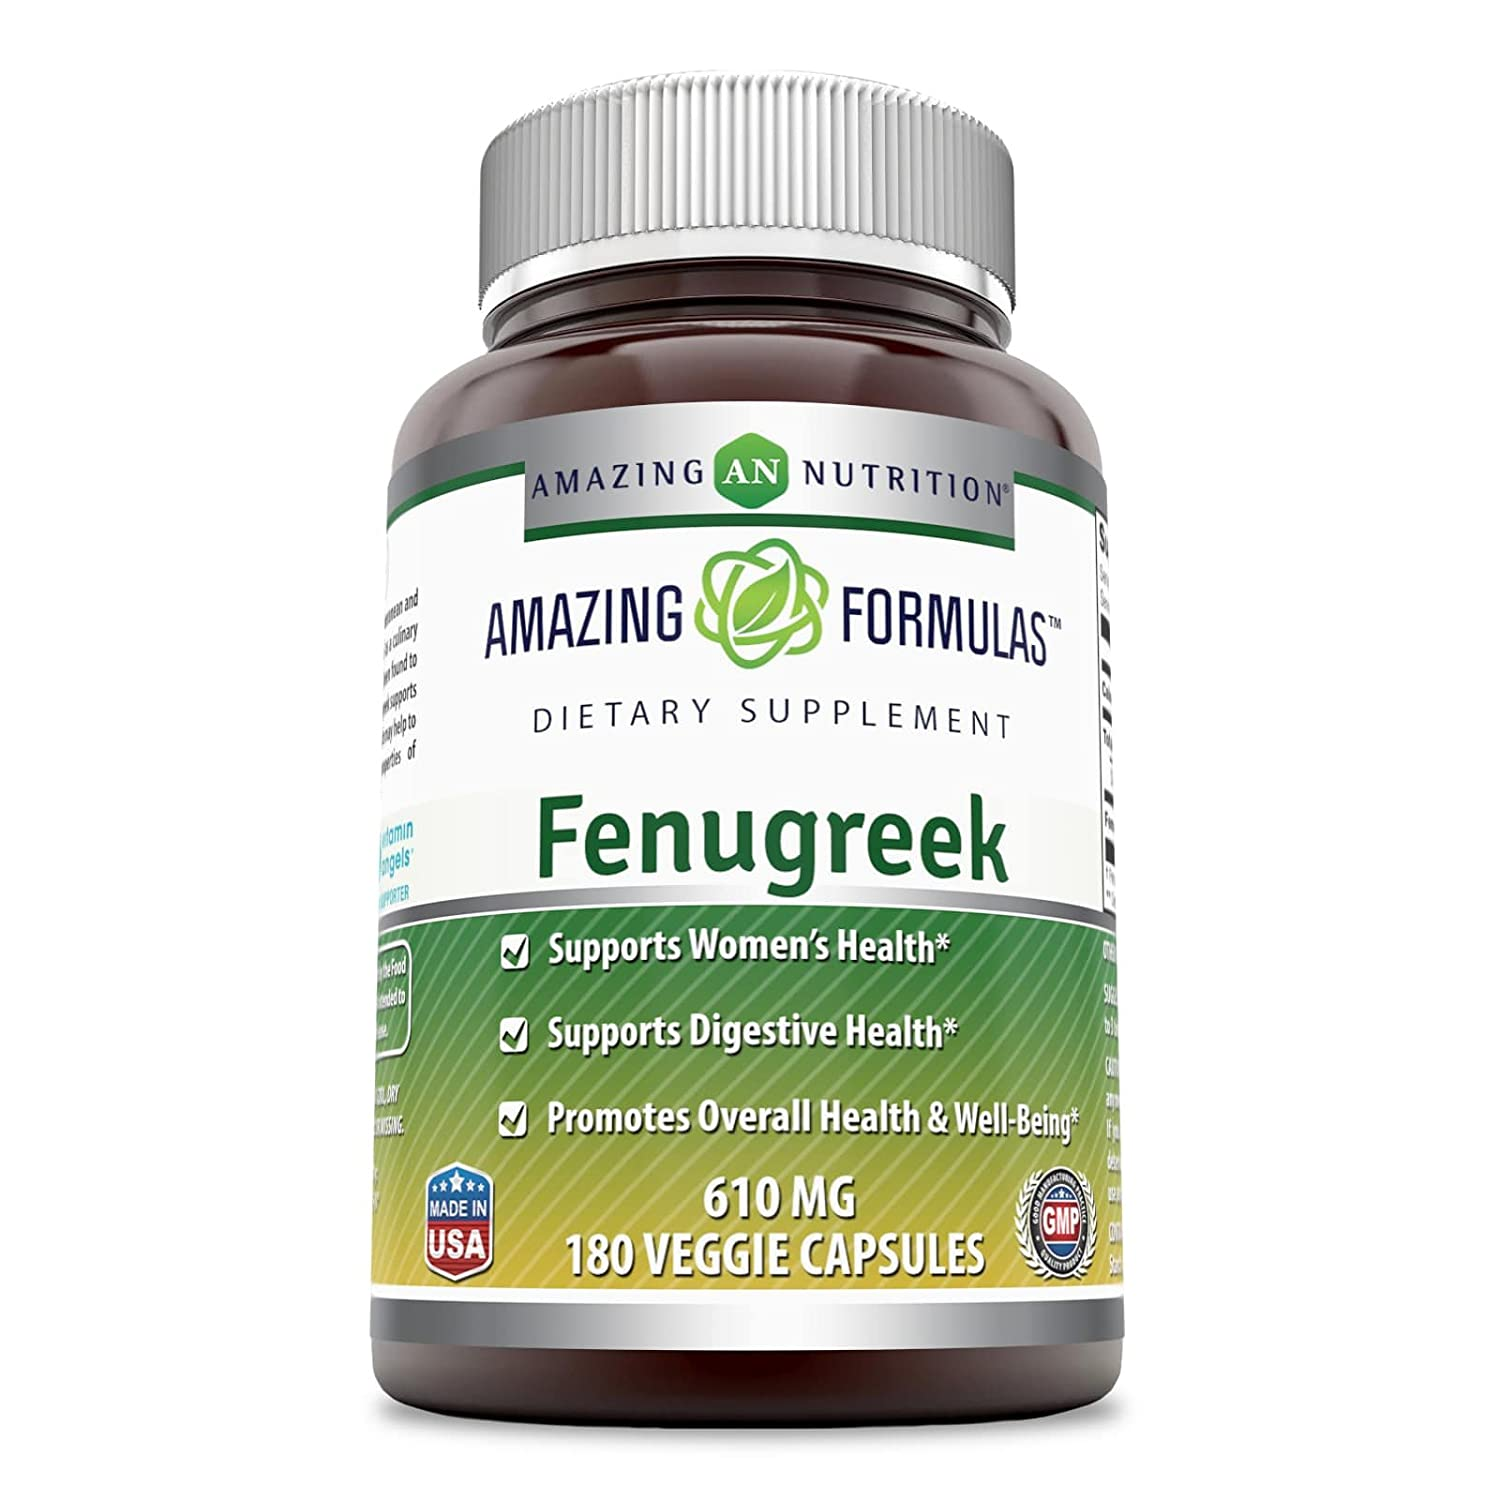 Amazing Formulas Fenugreek Seed Supplement - 610 mg Capsules Made With Pure Seed Extract - 180 Capsules Per Bottle - All Natural Supplements To Support Womens Health, B011LSHR0A